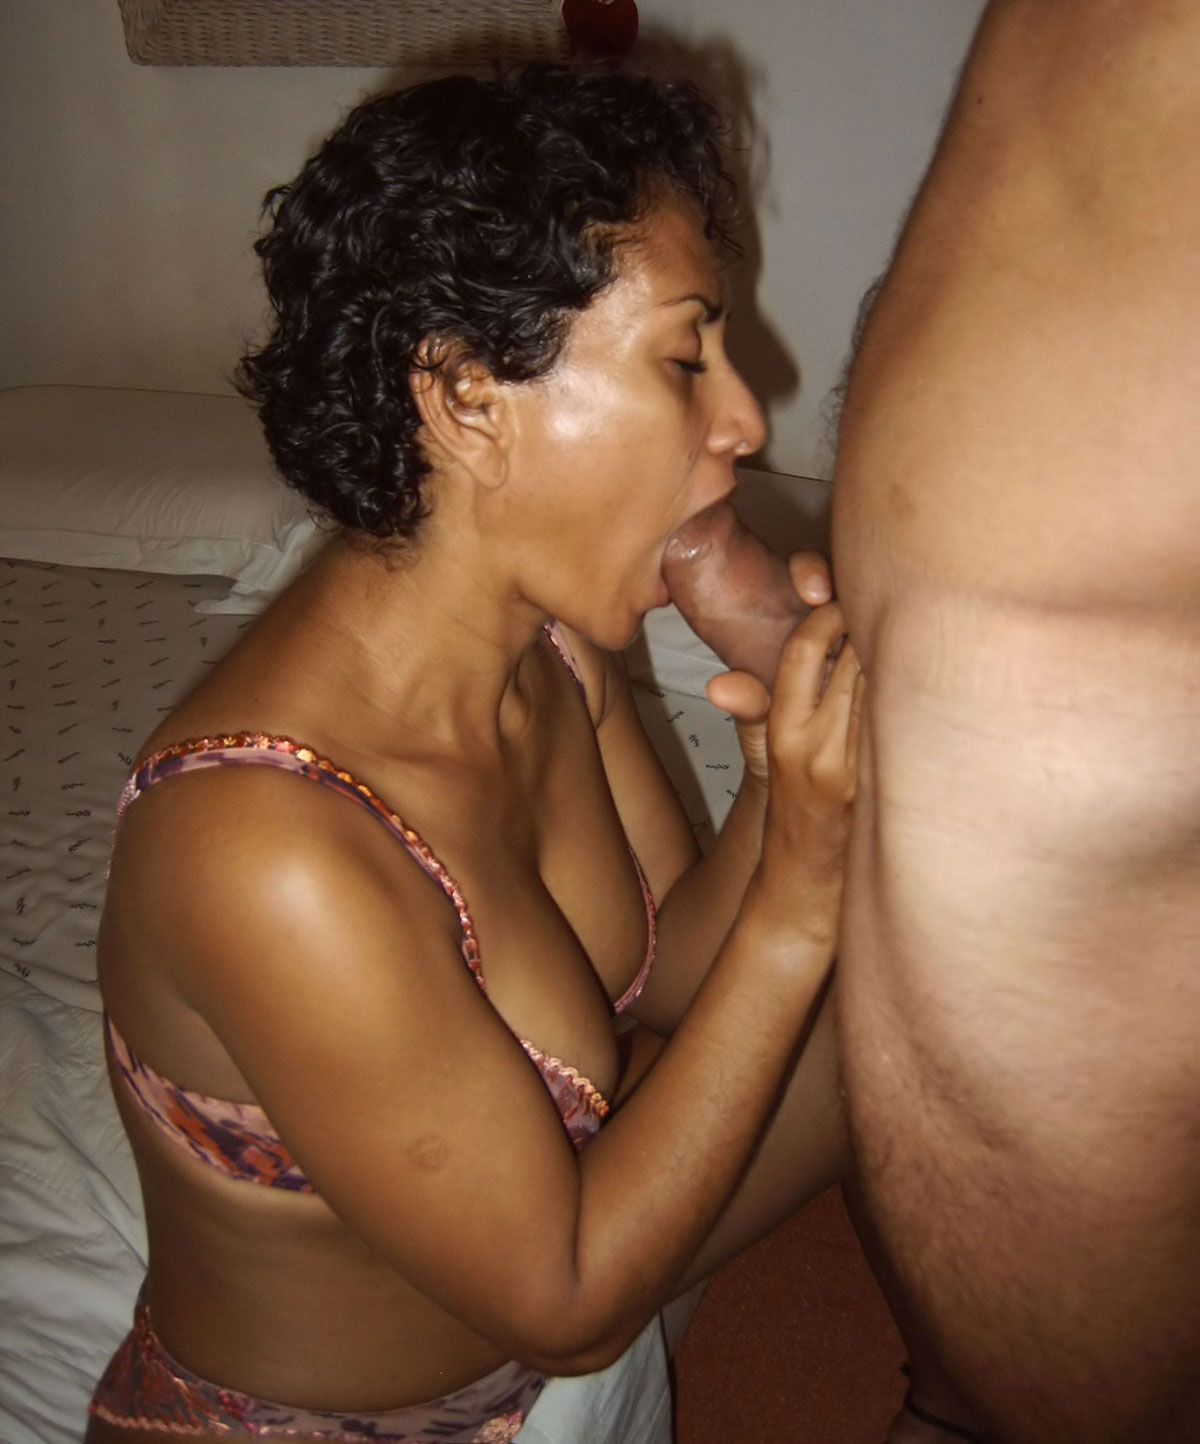 Wifes transgender handjob penis and interracial